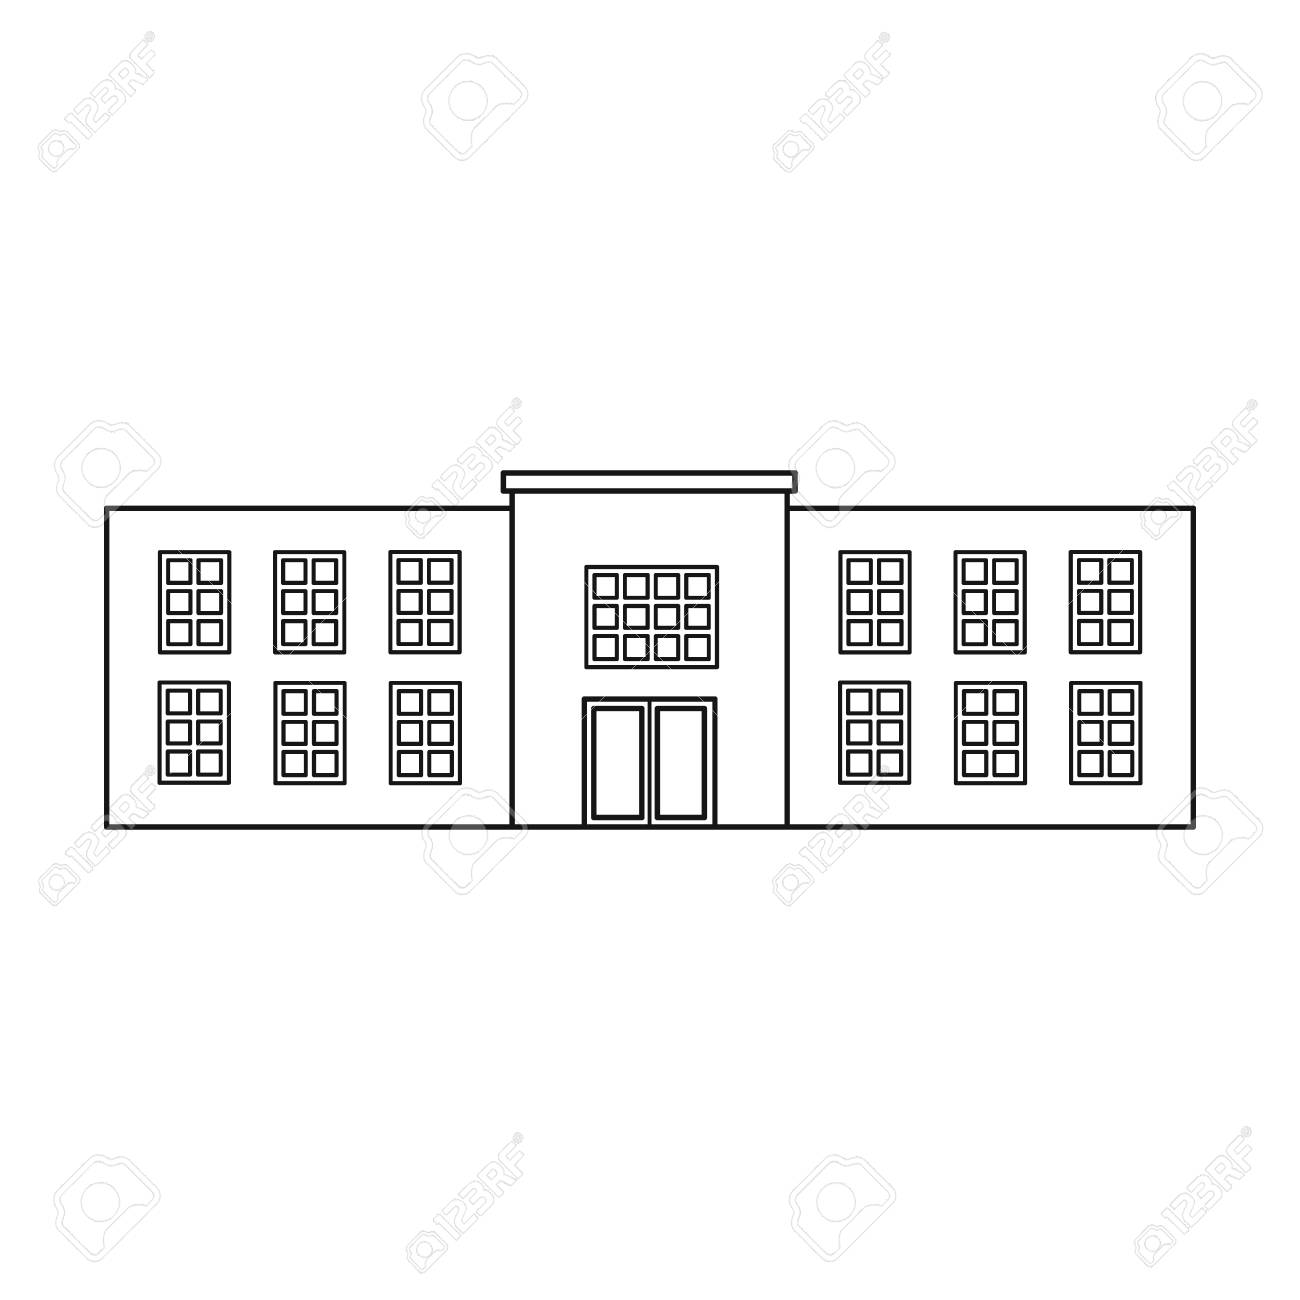 Police station icon in outline style isolated on white background police station icon in outline style isolated on white background building symbol vector illustration biocorpaavc